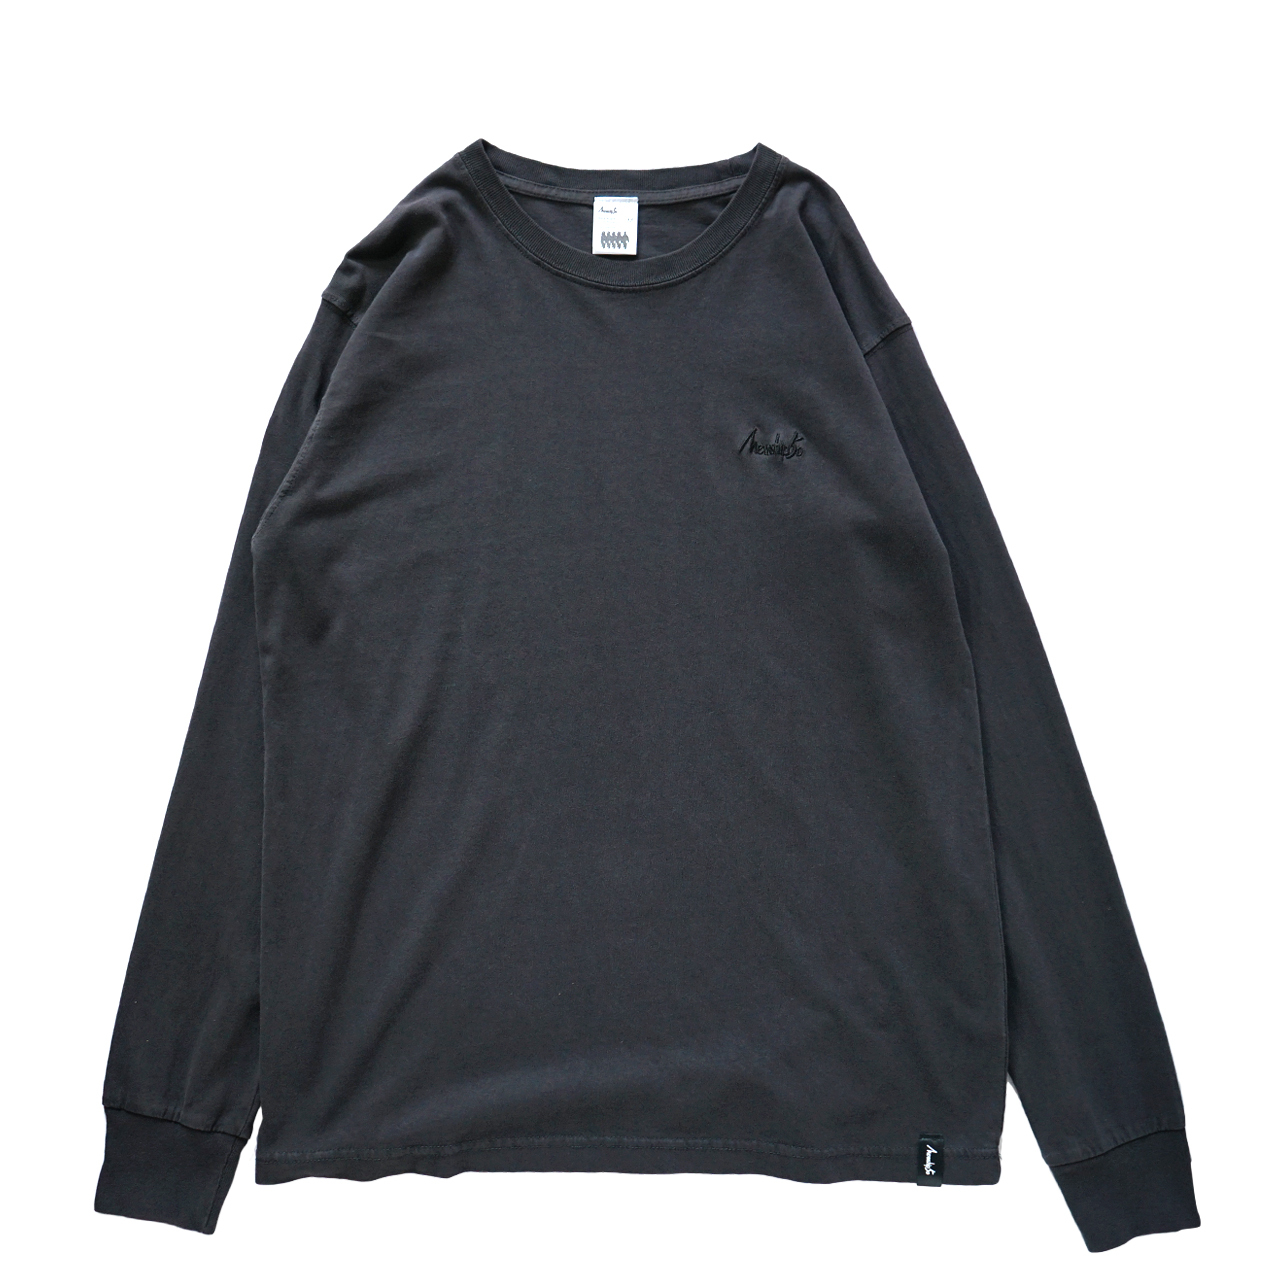 BASIC LOGO 2019 L/S CT <T.Black×Black> - 画像1